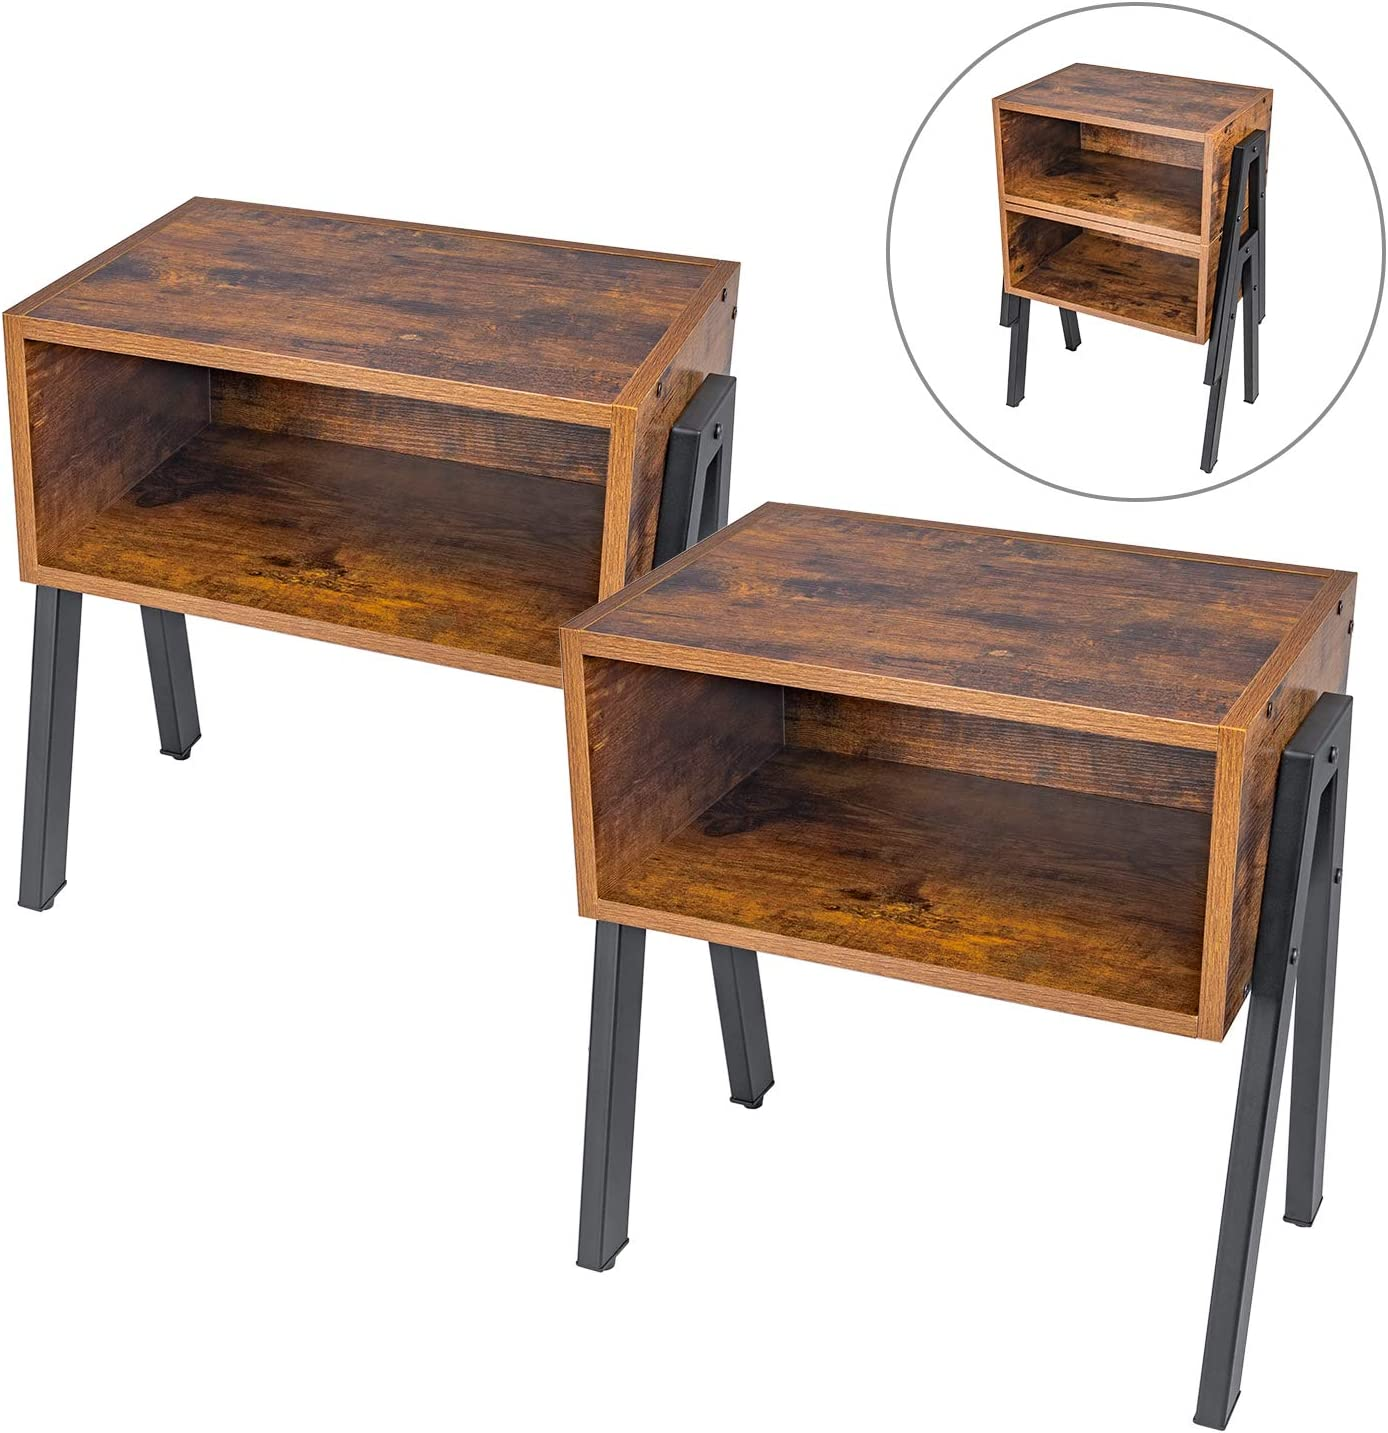 Nightstand, Set of 2 Stackable End Table, Side Table for Small Spaces, Industrial Accent Furniture, Metal Frame, Rustic Brown